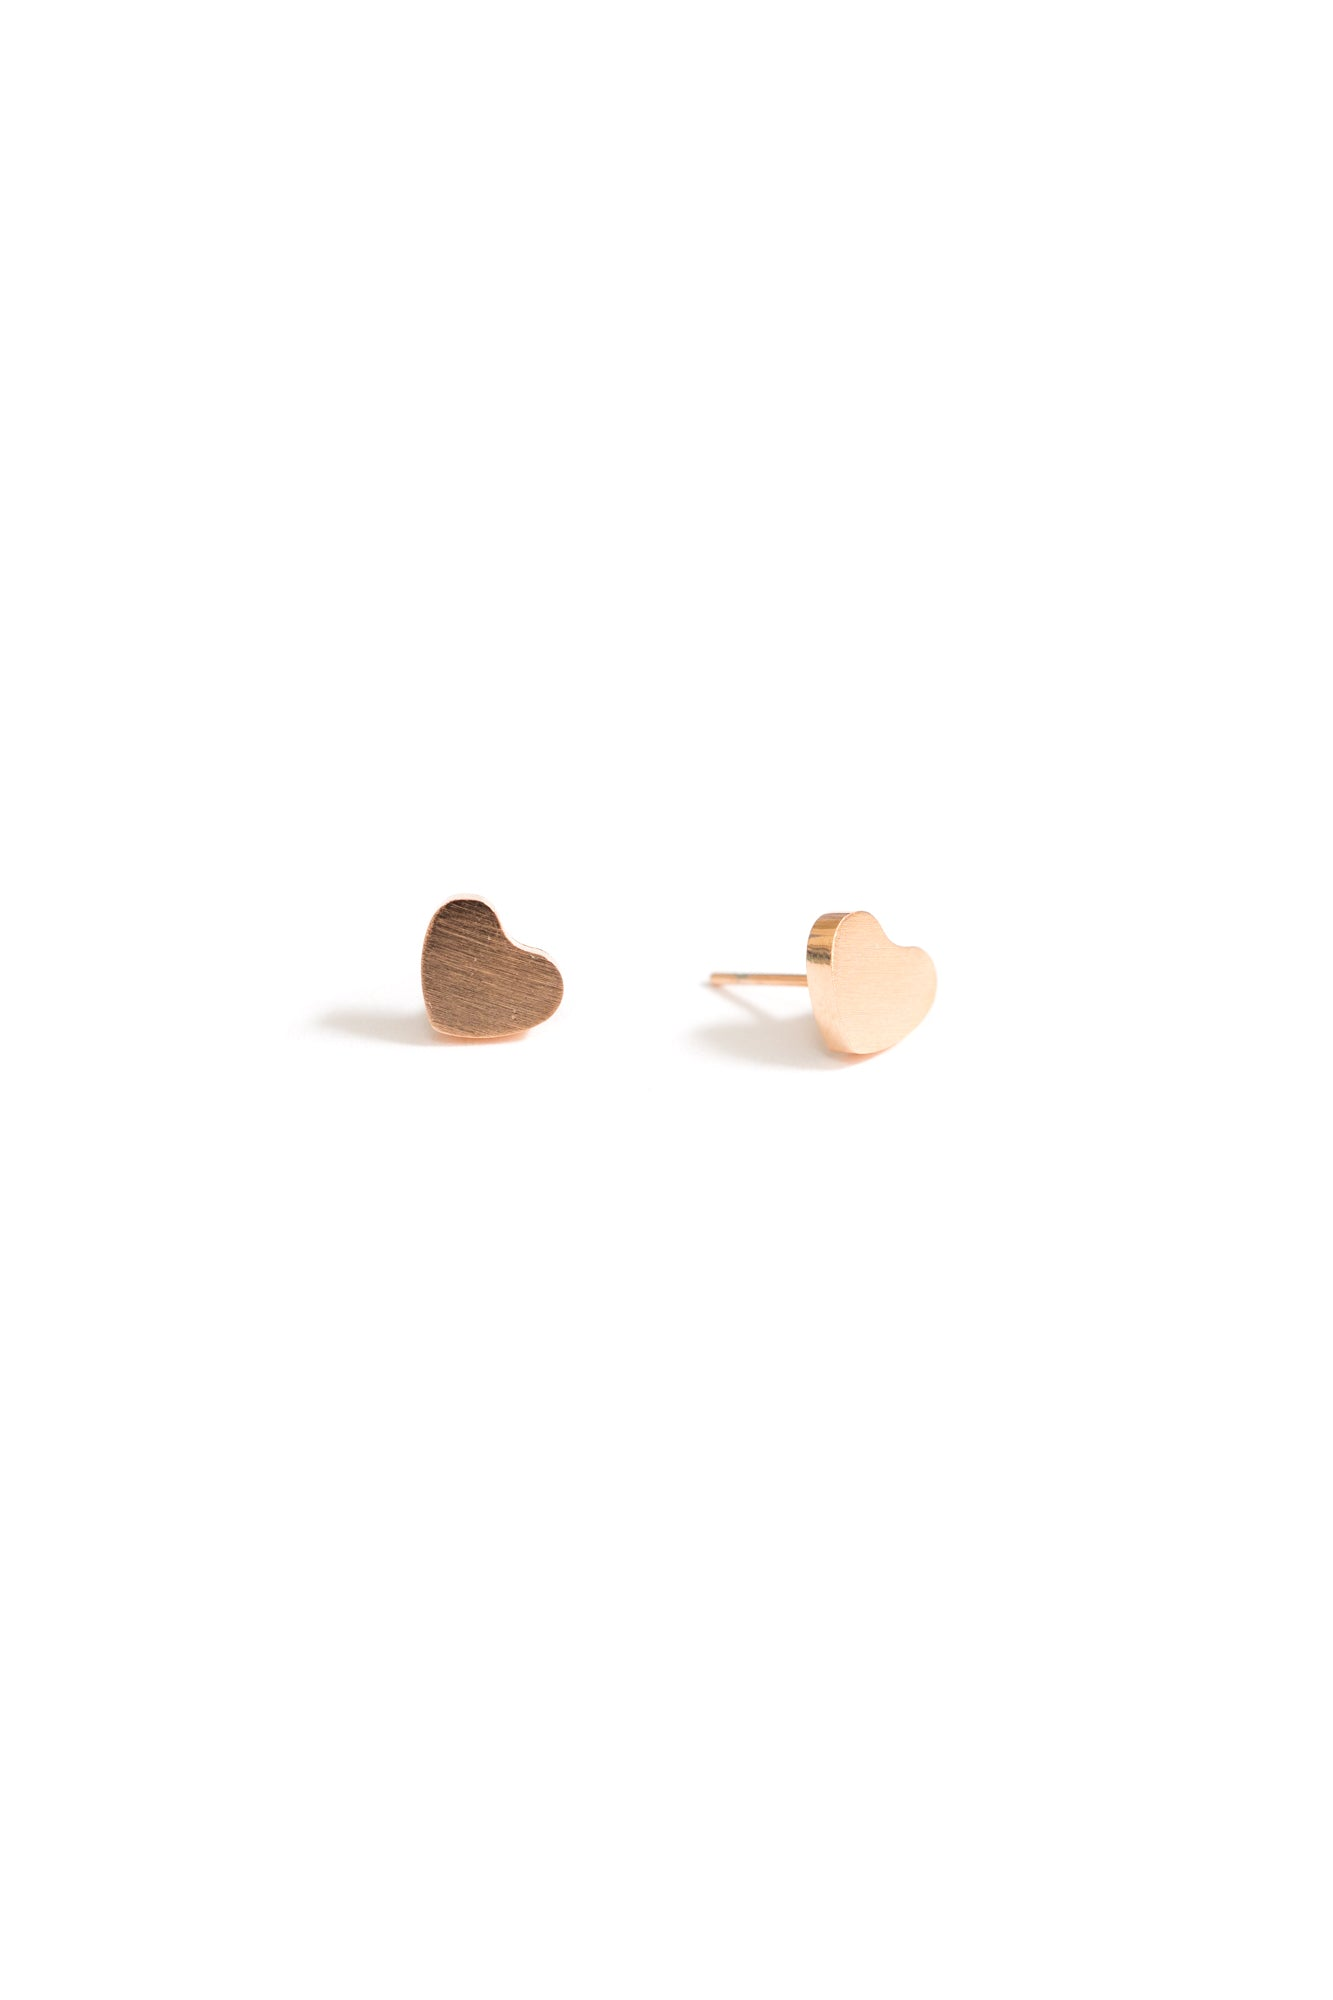 Heart Stud Earrings | 18K Rose Gold Plating | Janna Conner